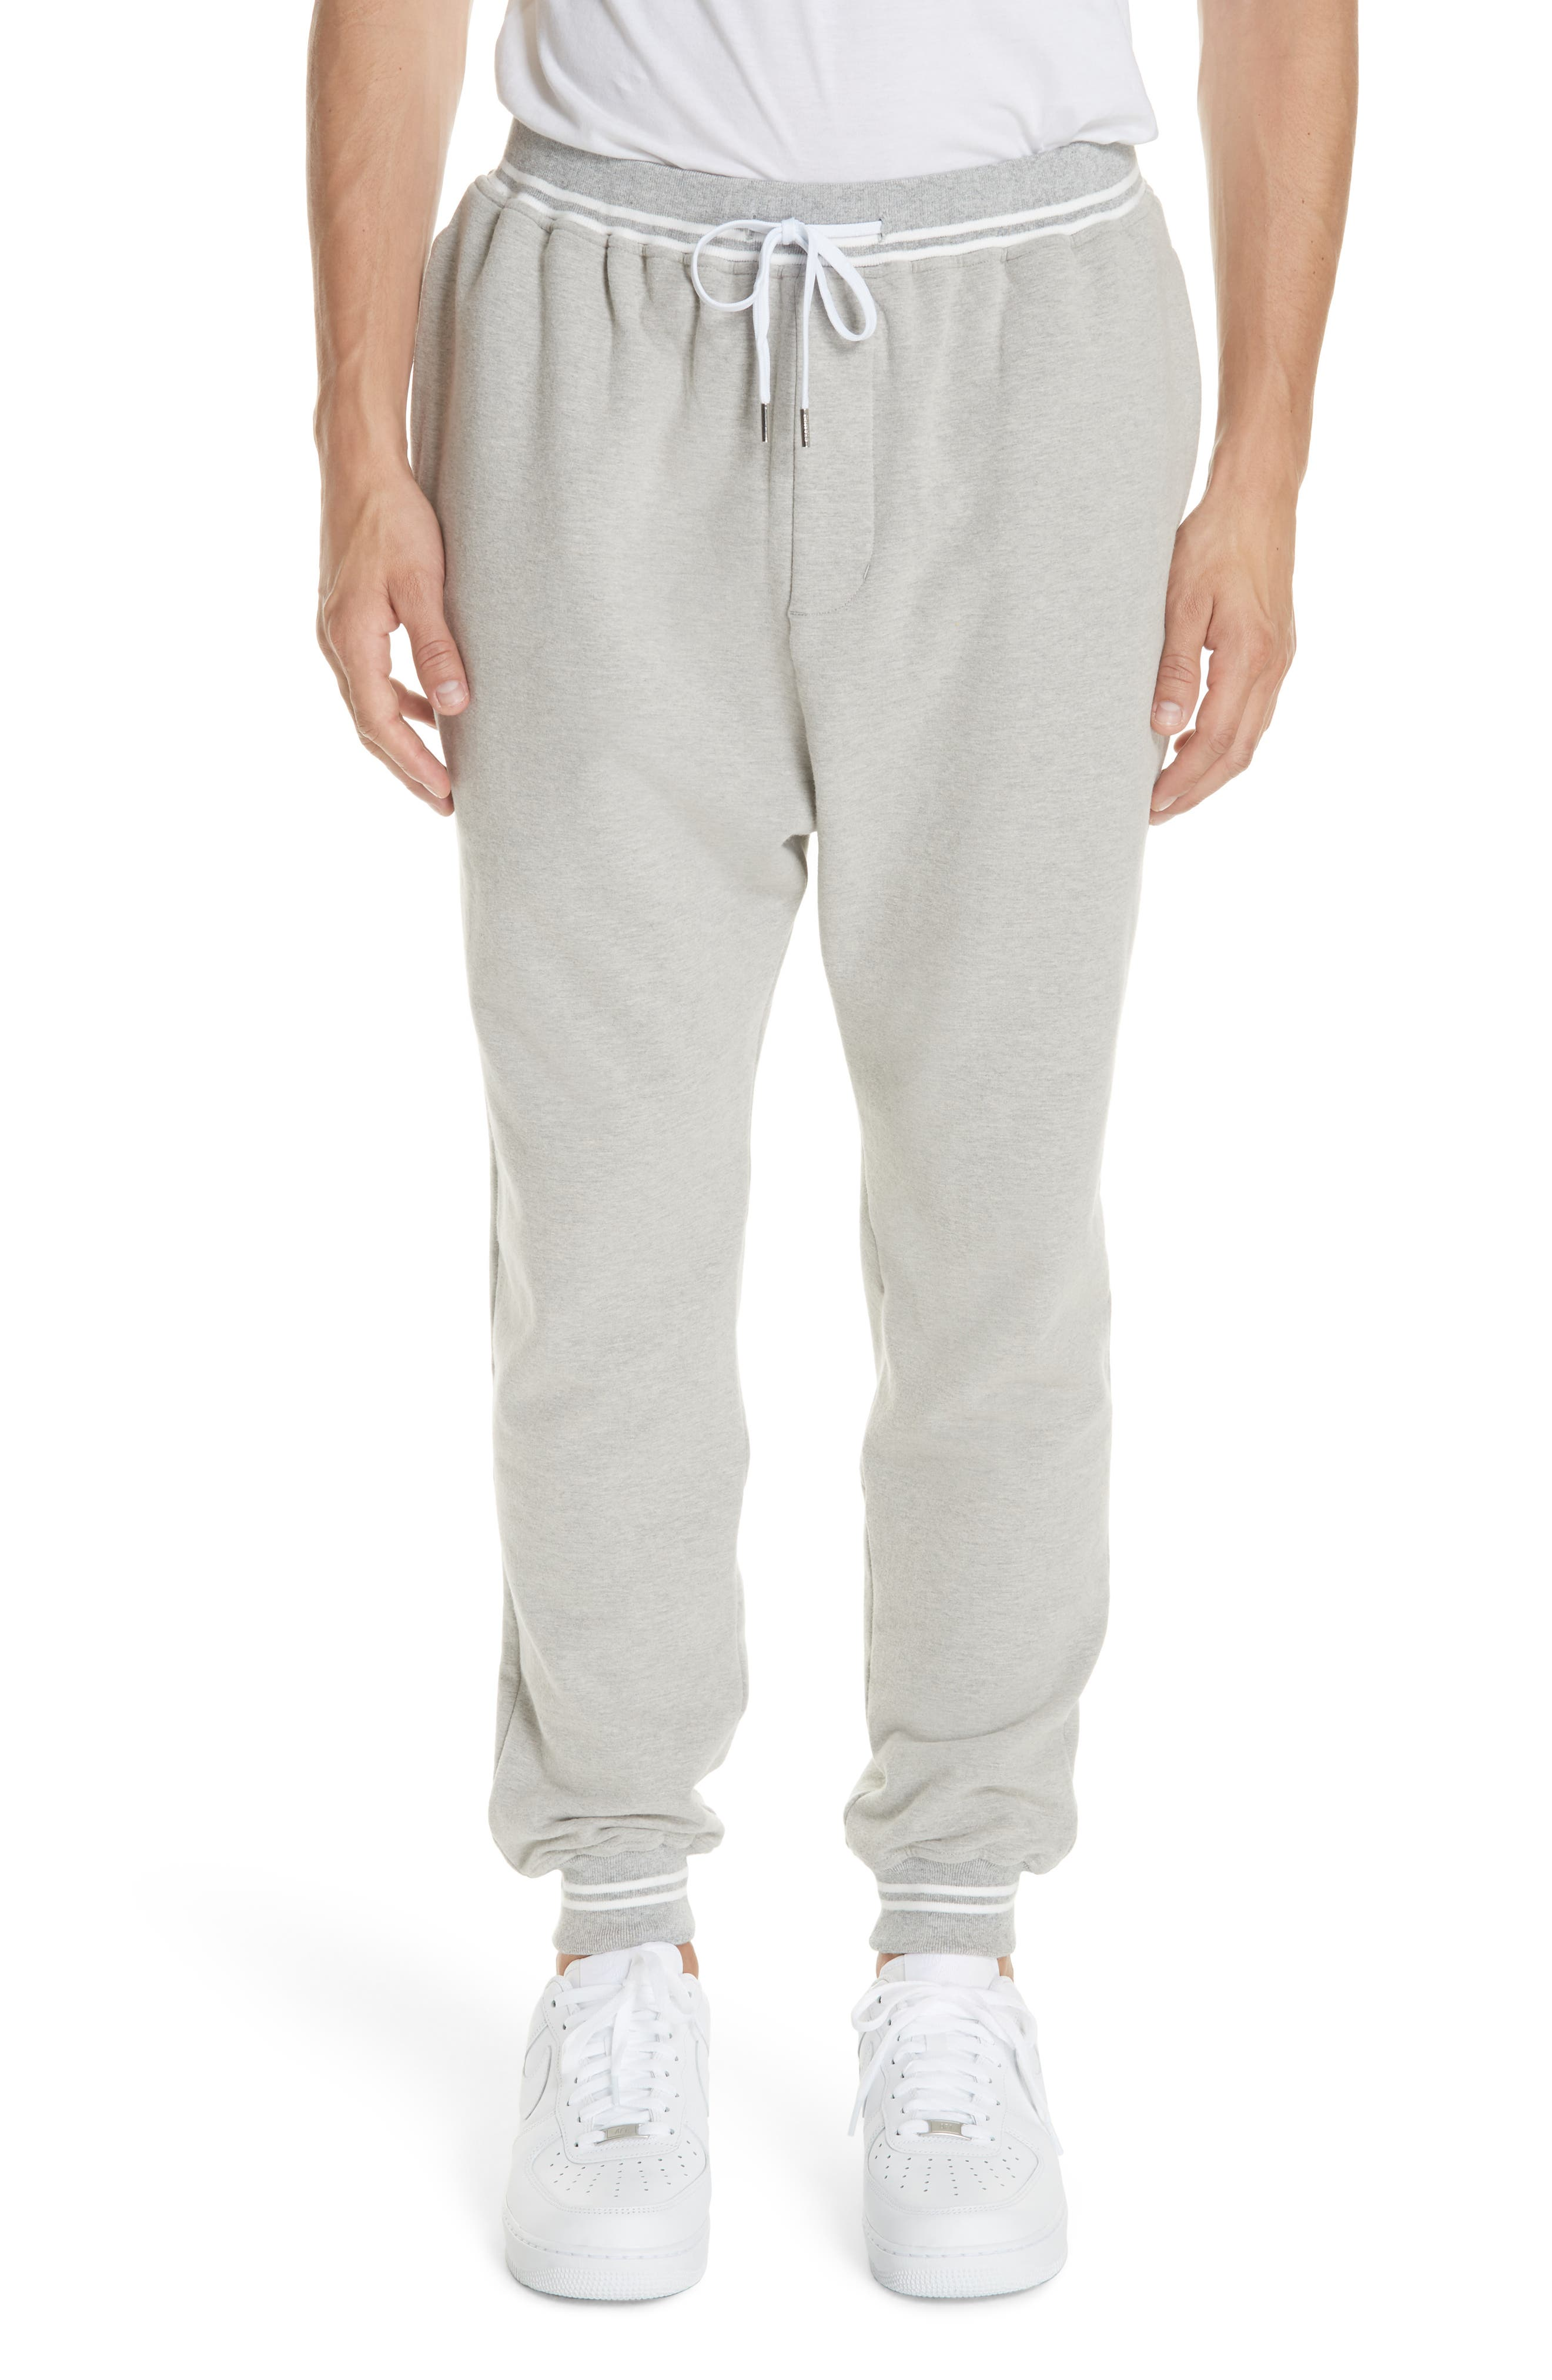 STAMPD Classic Jogger Pants in Heather Grey